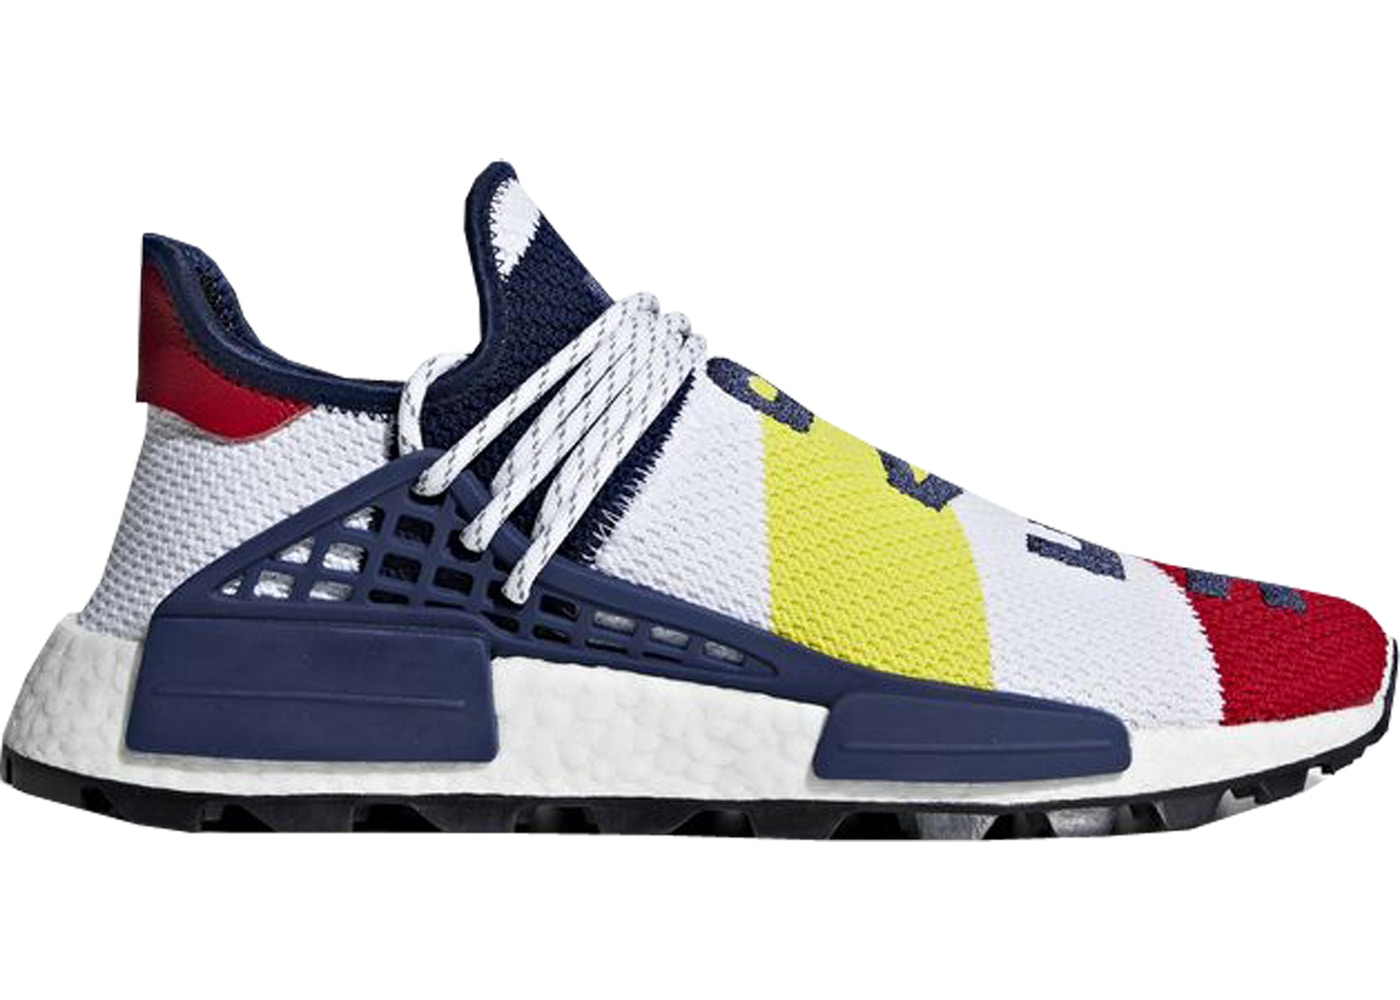 5f6e224e75d8b adidas NMD Hu Pharrell x Billionaire Boys Club Multi-Color - BB9544